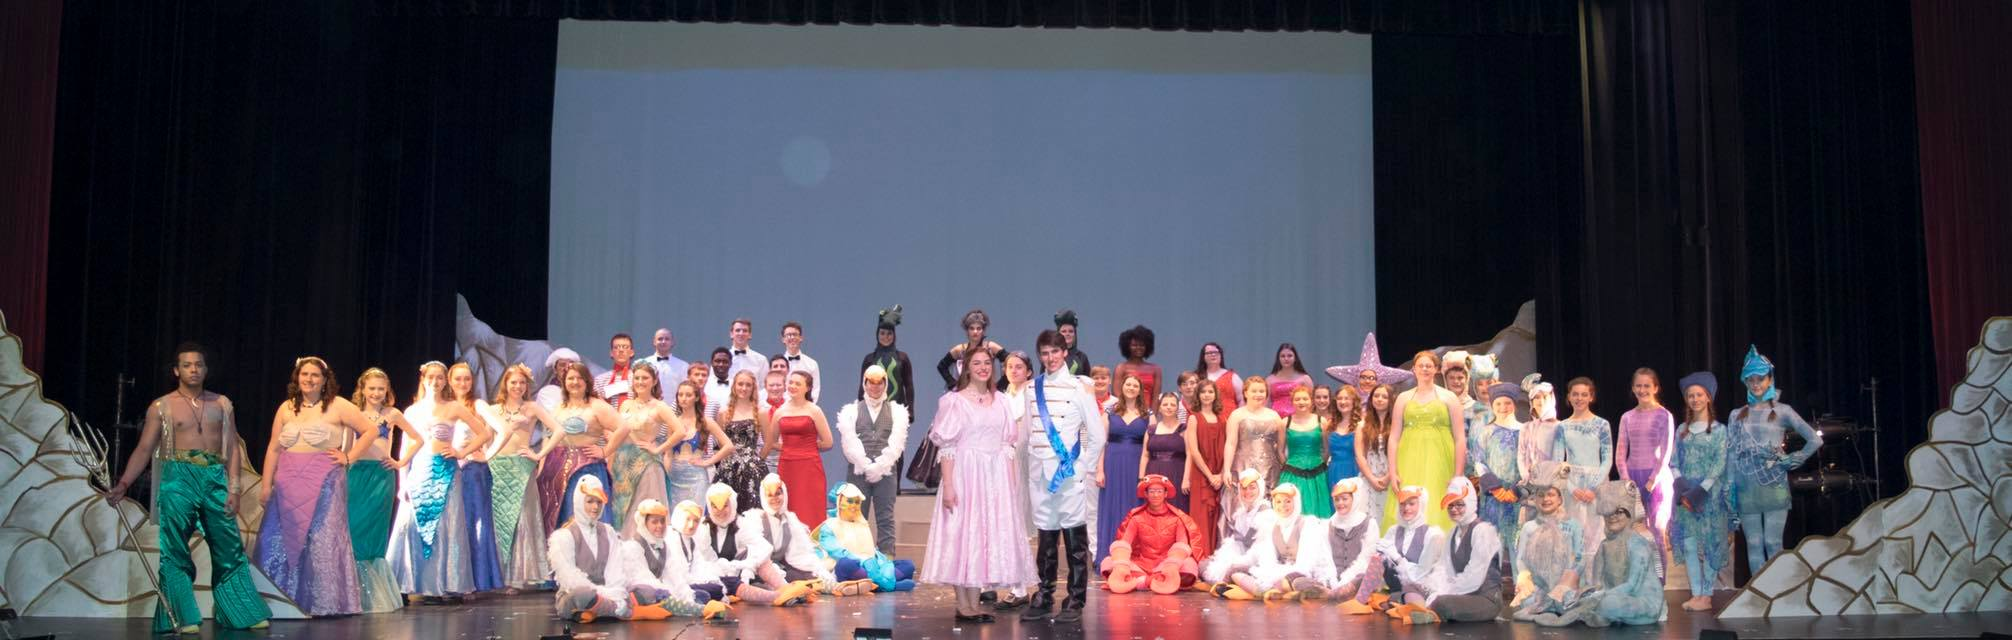 Cast of The Little Mermaid